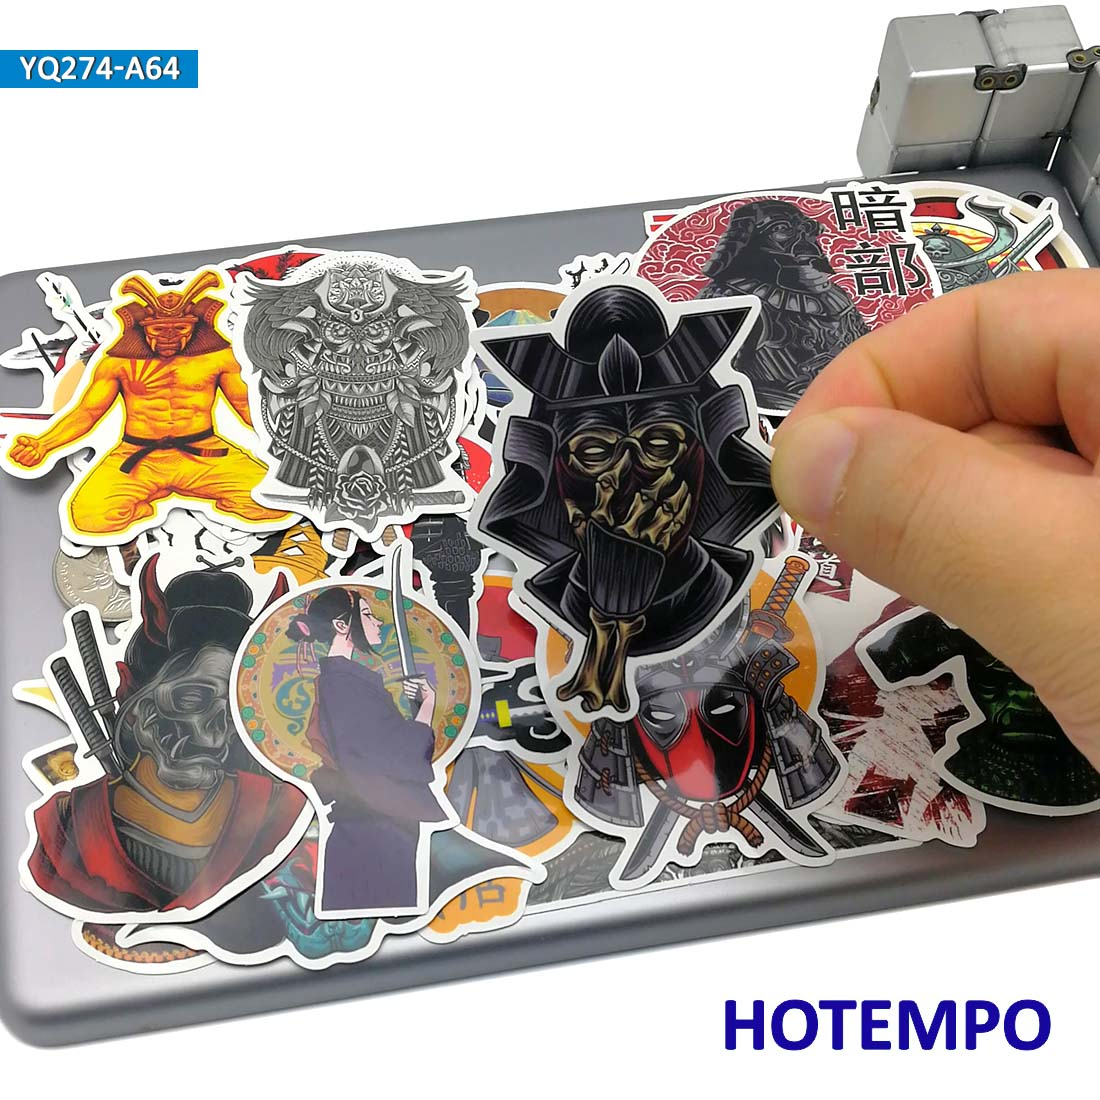 60pcs Japan Samurai Bushido Spirit Style Art Sticker For Mobile Phone Laptop Luggage Guitar Skateboard Bike PVC Waterproof Decal